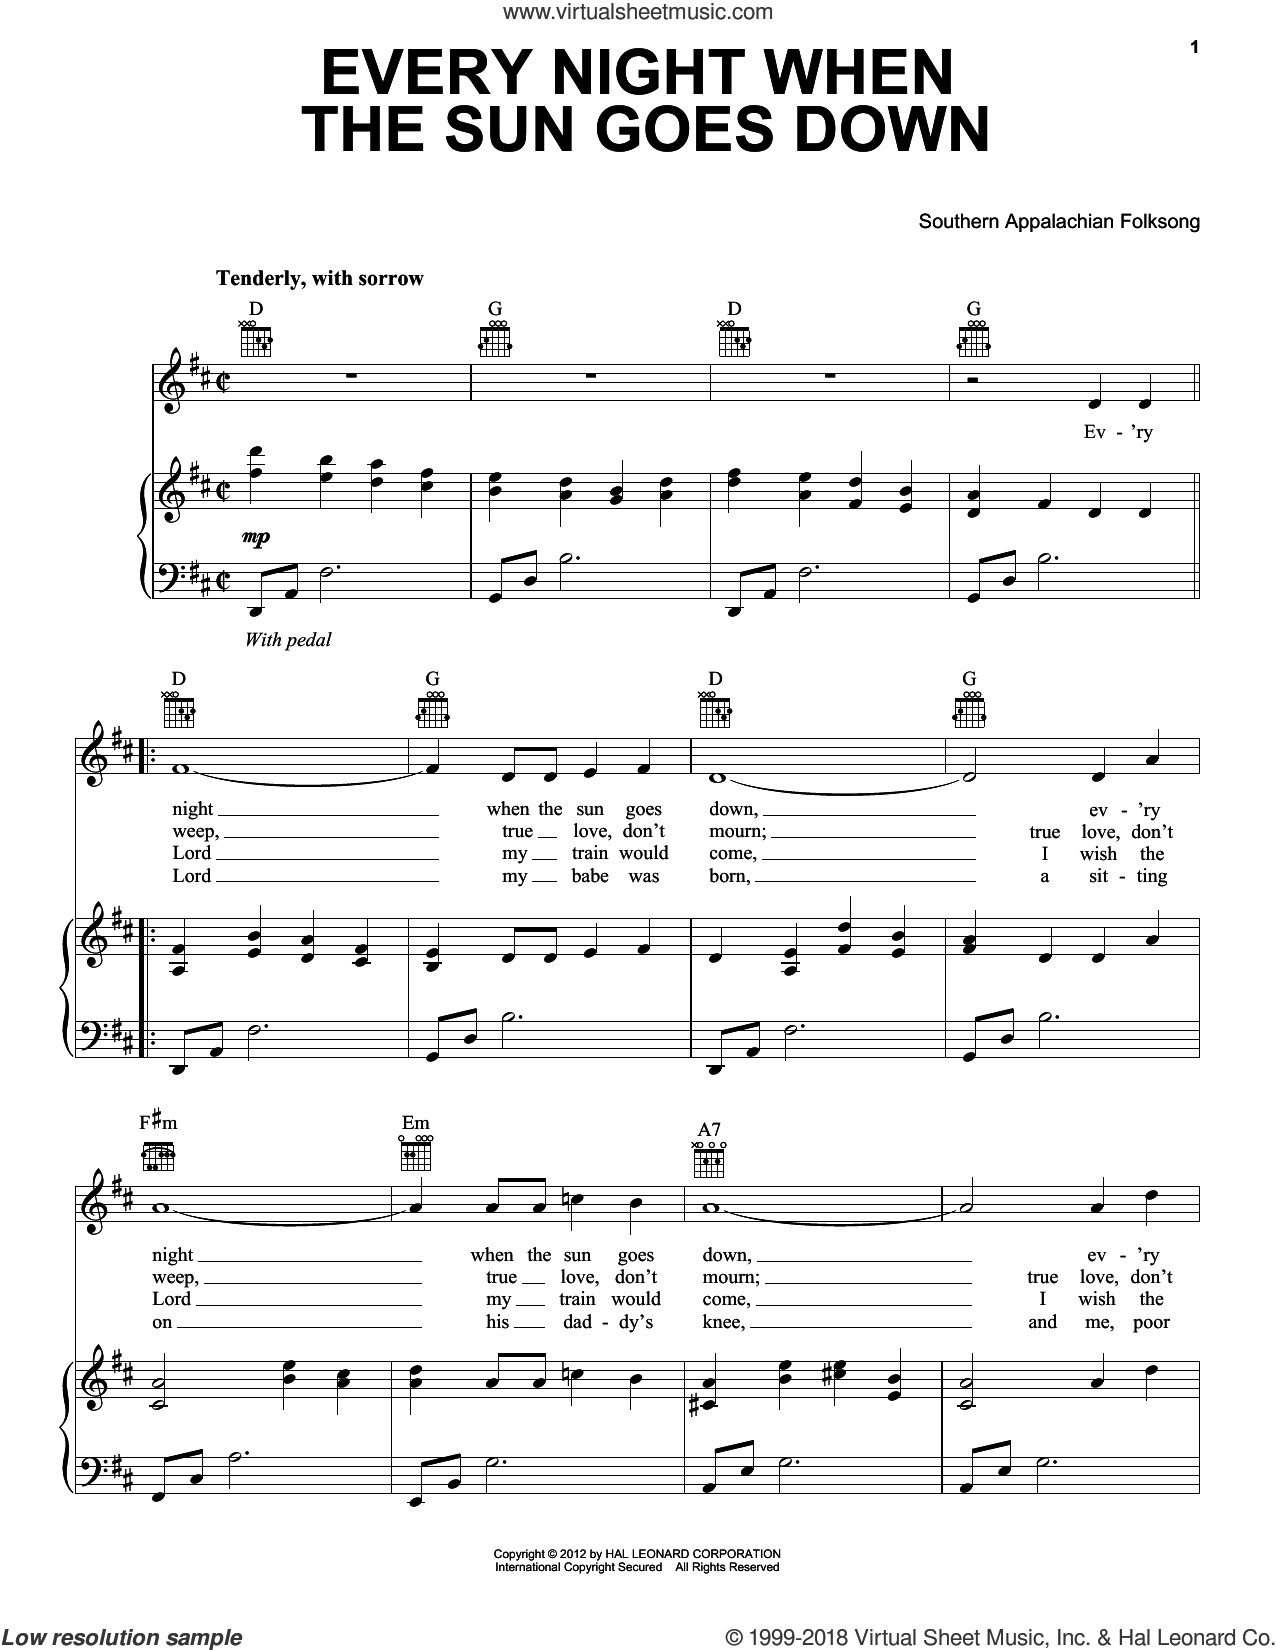 Every Night When Sun Goes Down sheet music for voice, piano or guitar